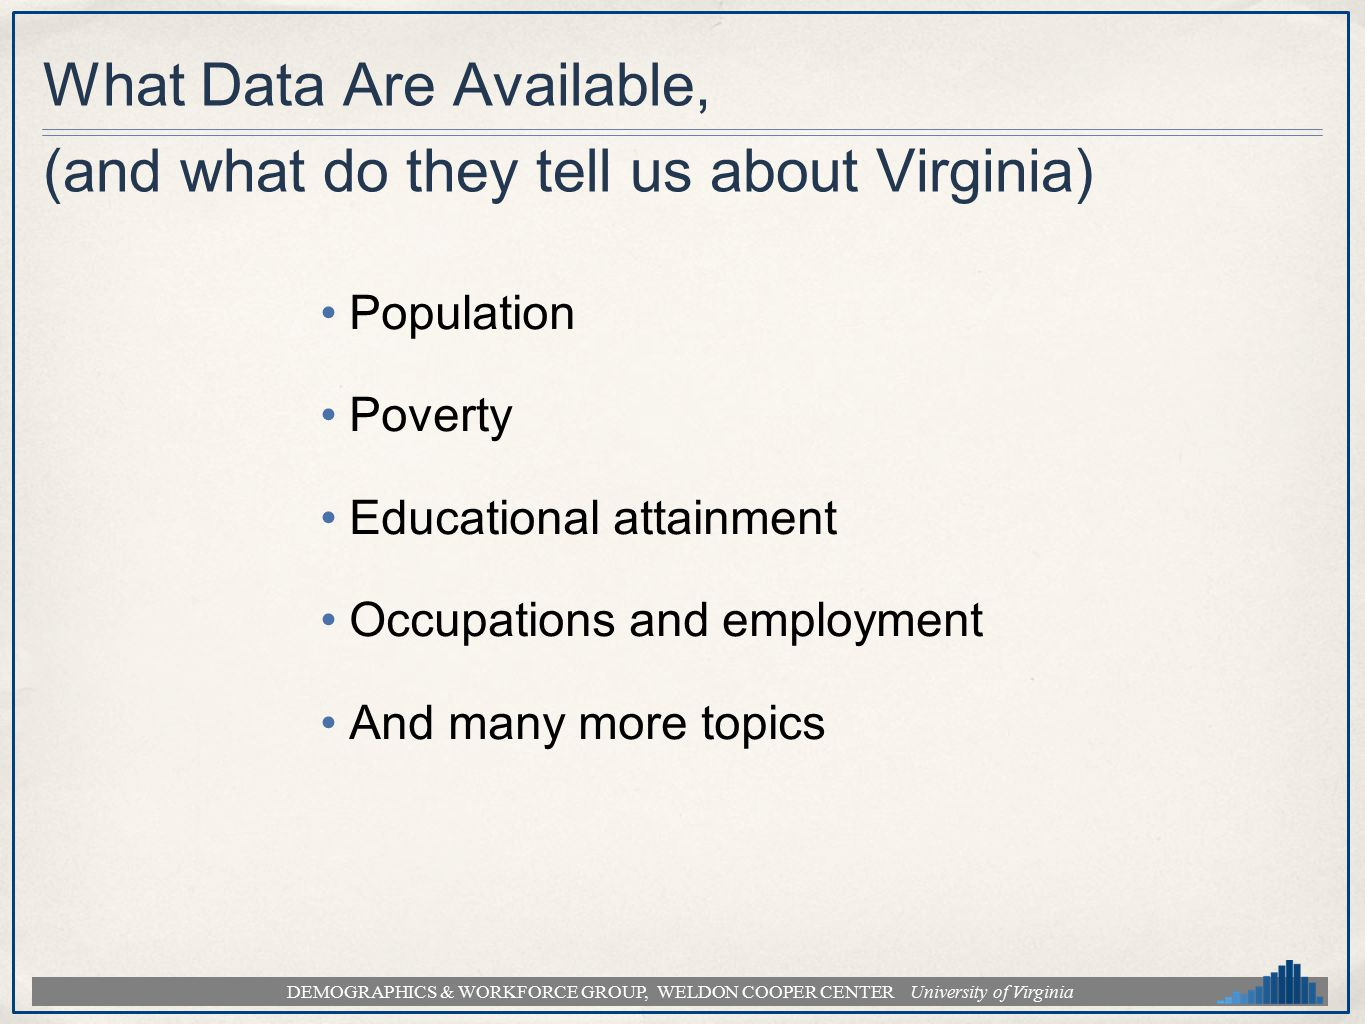 DEMOGRAPHICS & WORKFORCE GROUP, WELDON COOPER CENTER University of Virginia What Data Are Available, (and what do they tell us about Virginia) Populat